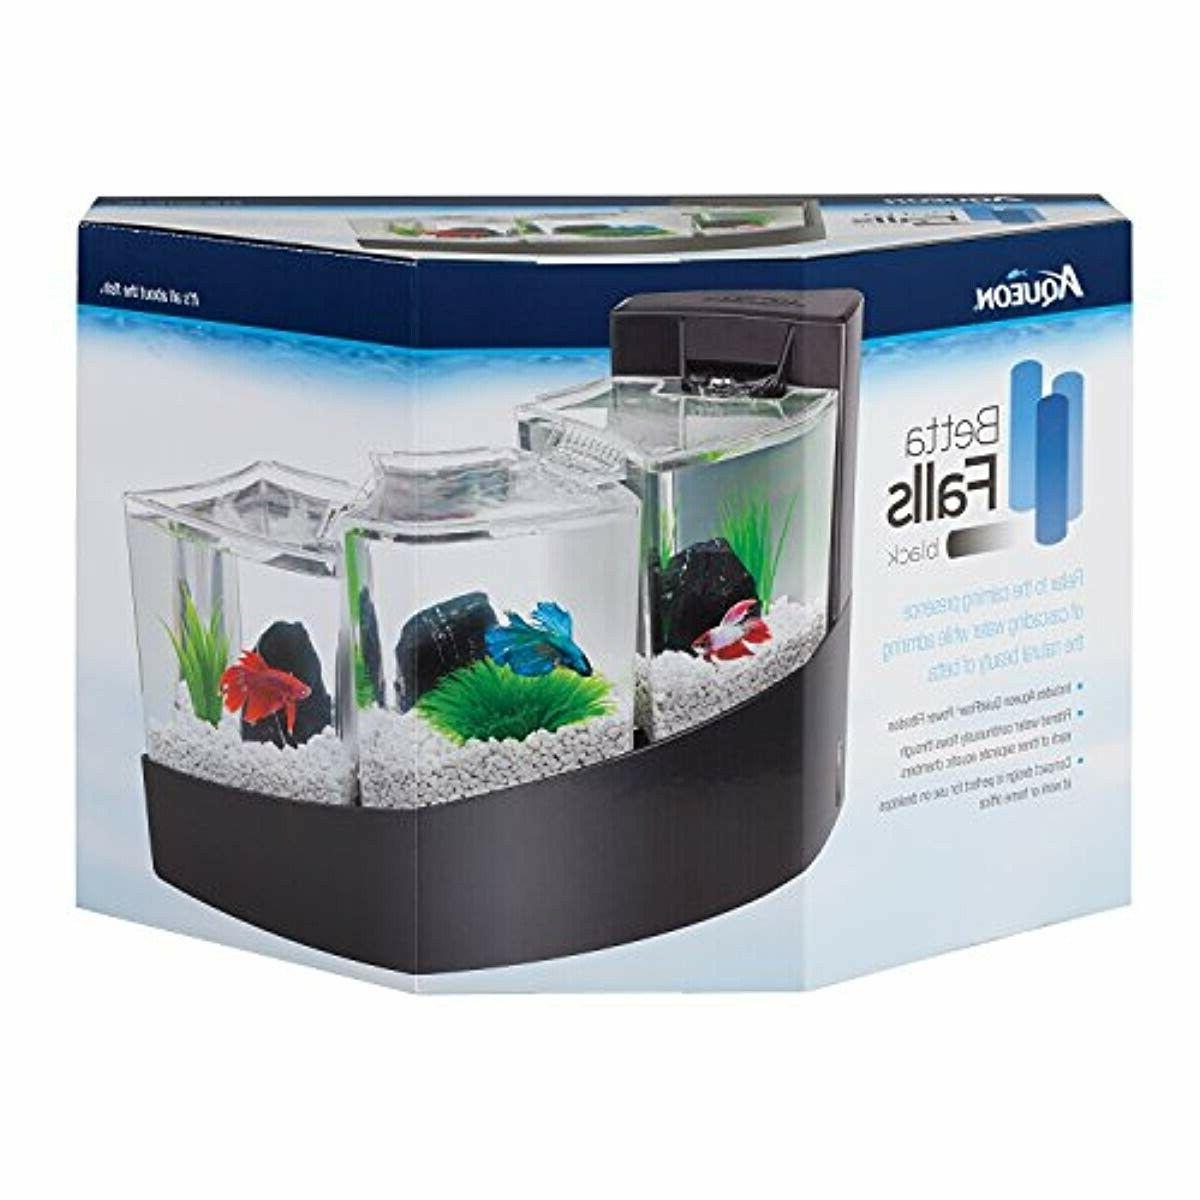 AQUEON KIT BETTA BLACK FISH NEW FREE SHIPPING